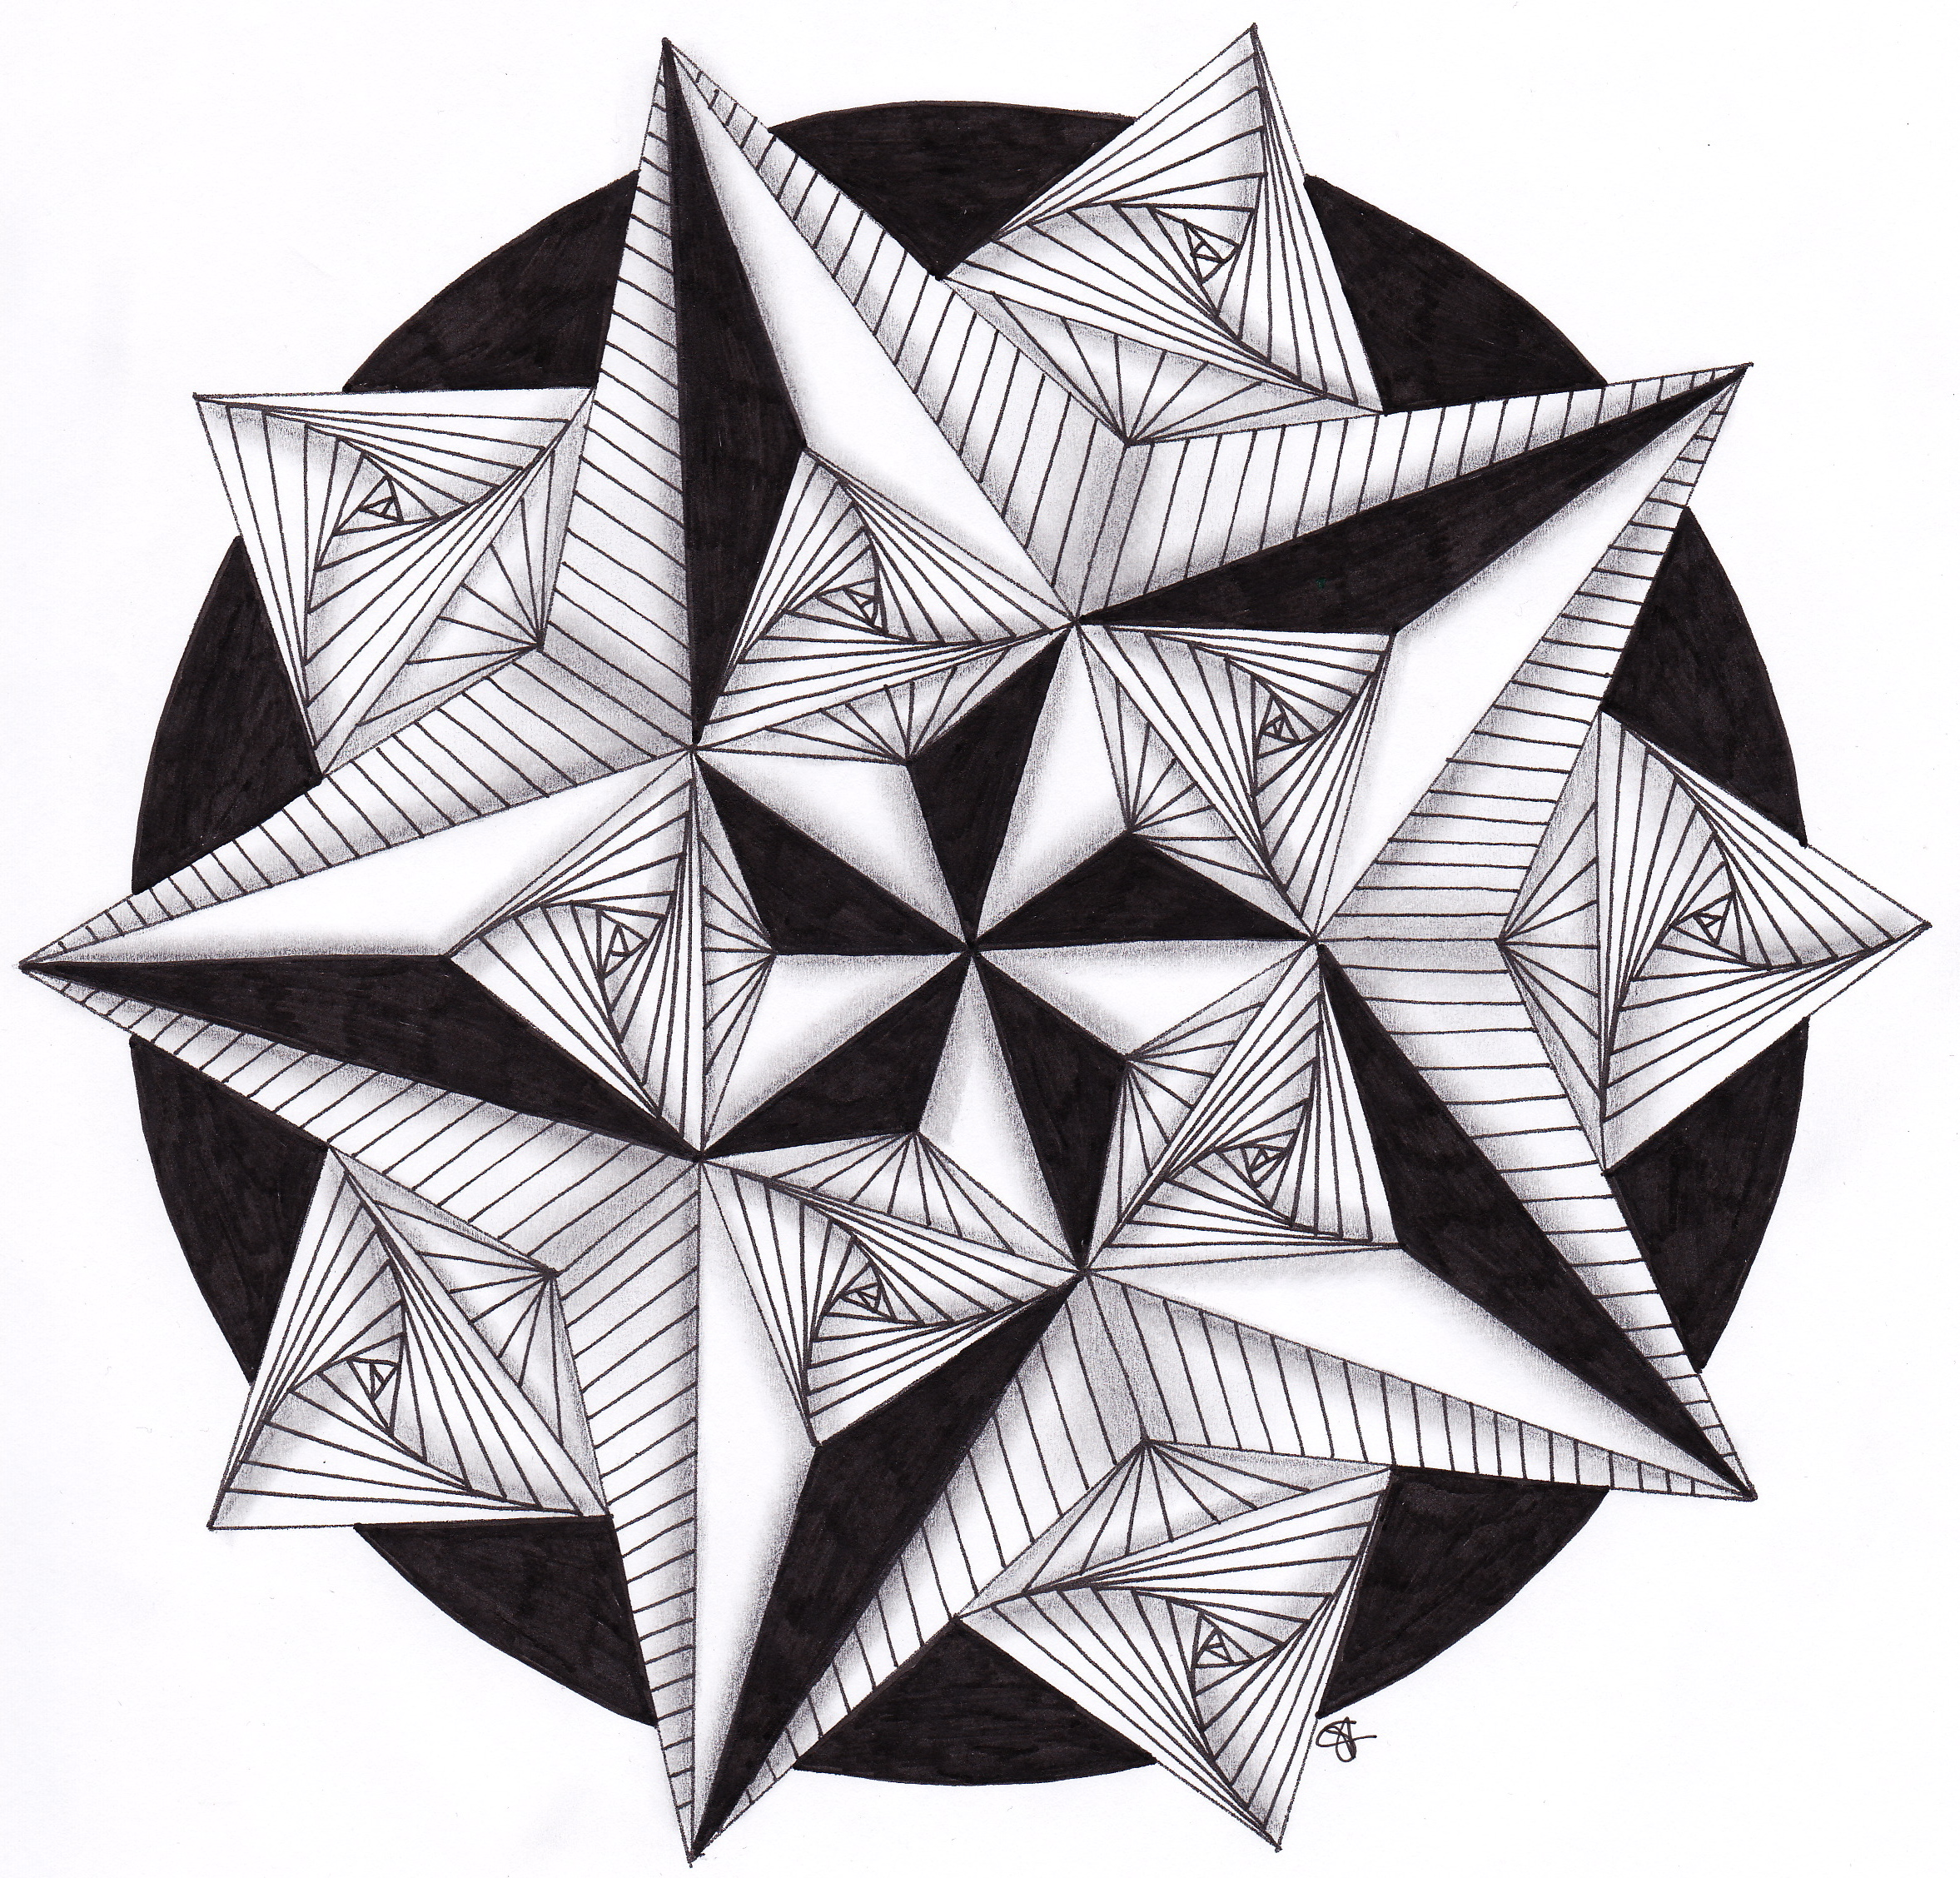 Drawn stare symmetrical Mandalas filled with paradox star